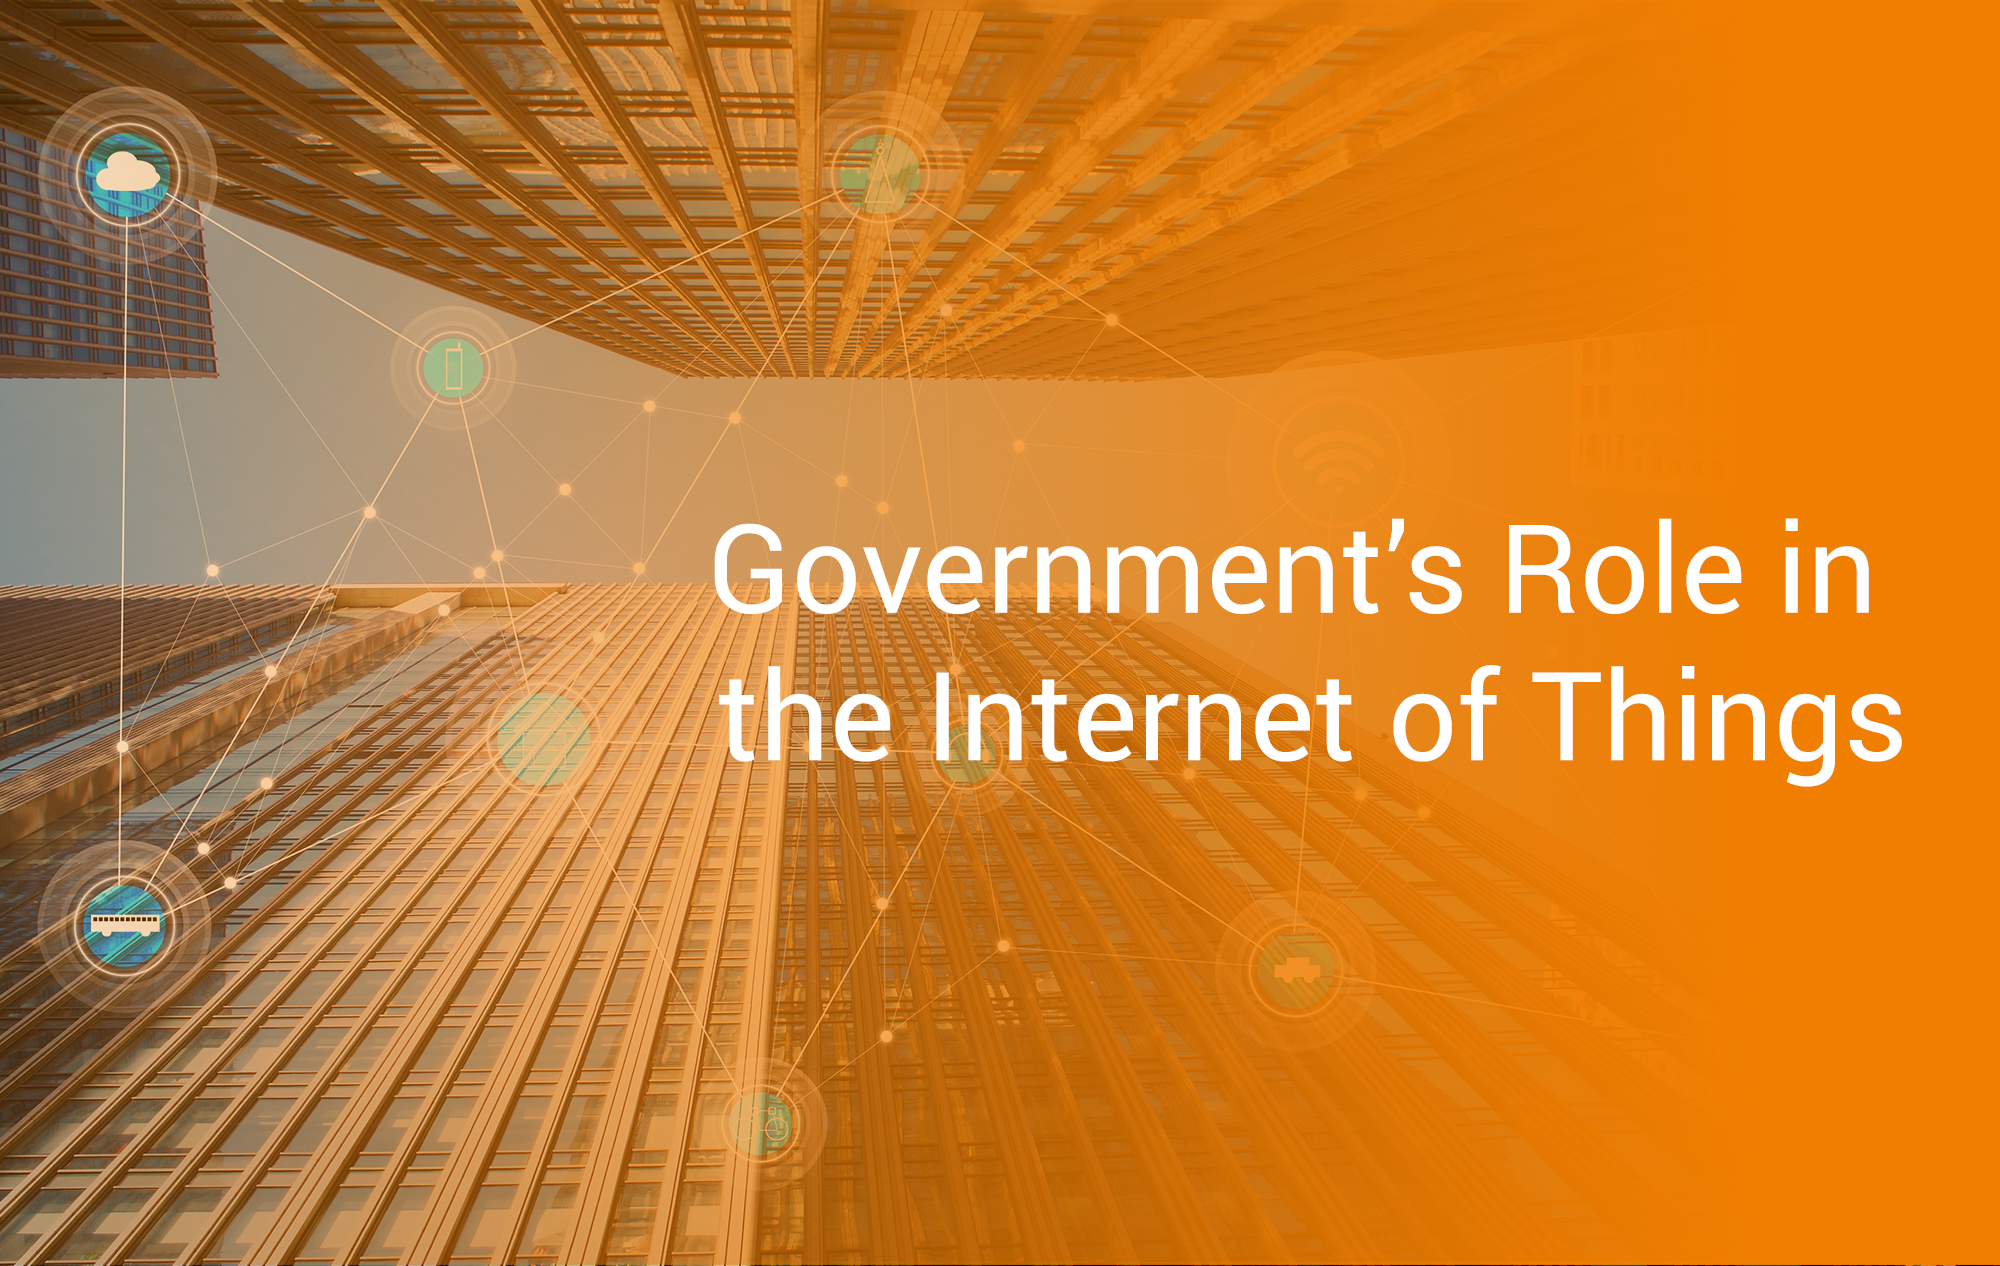 Government's Role in the Internet of Things